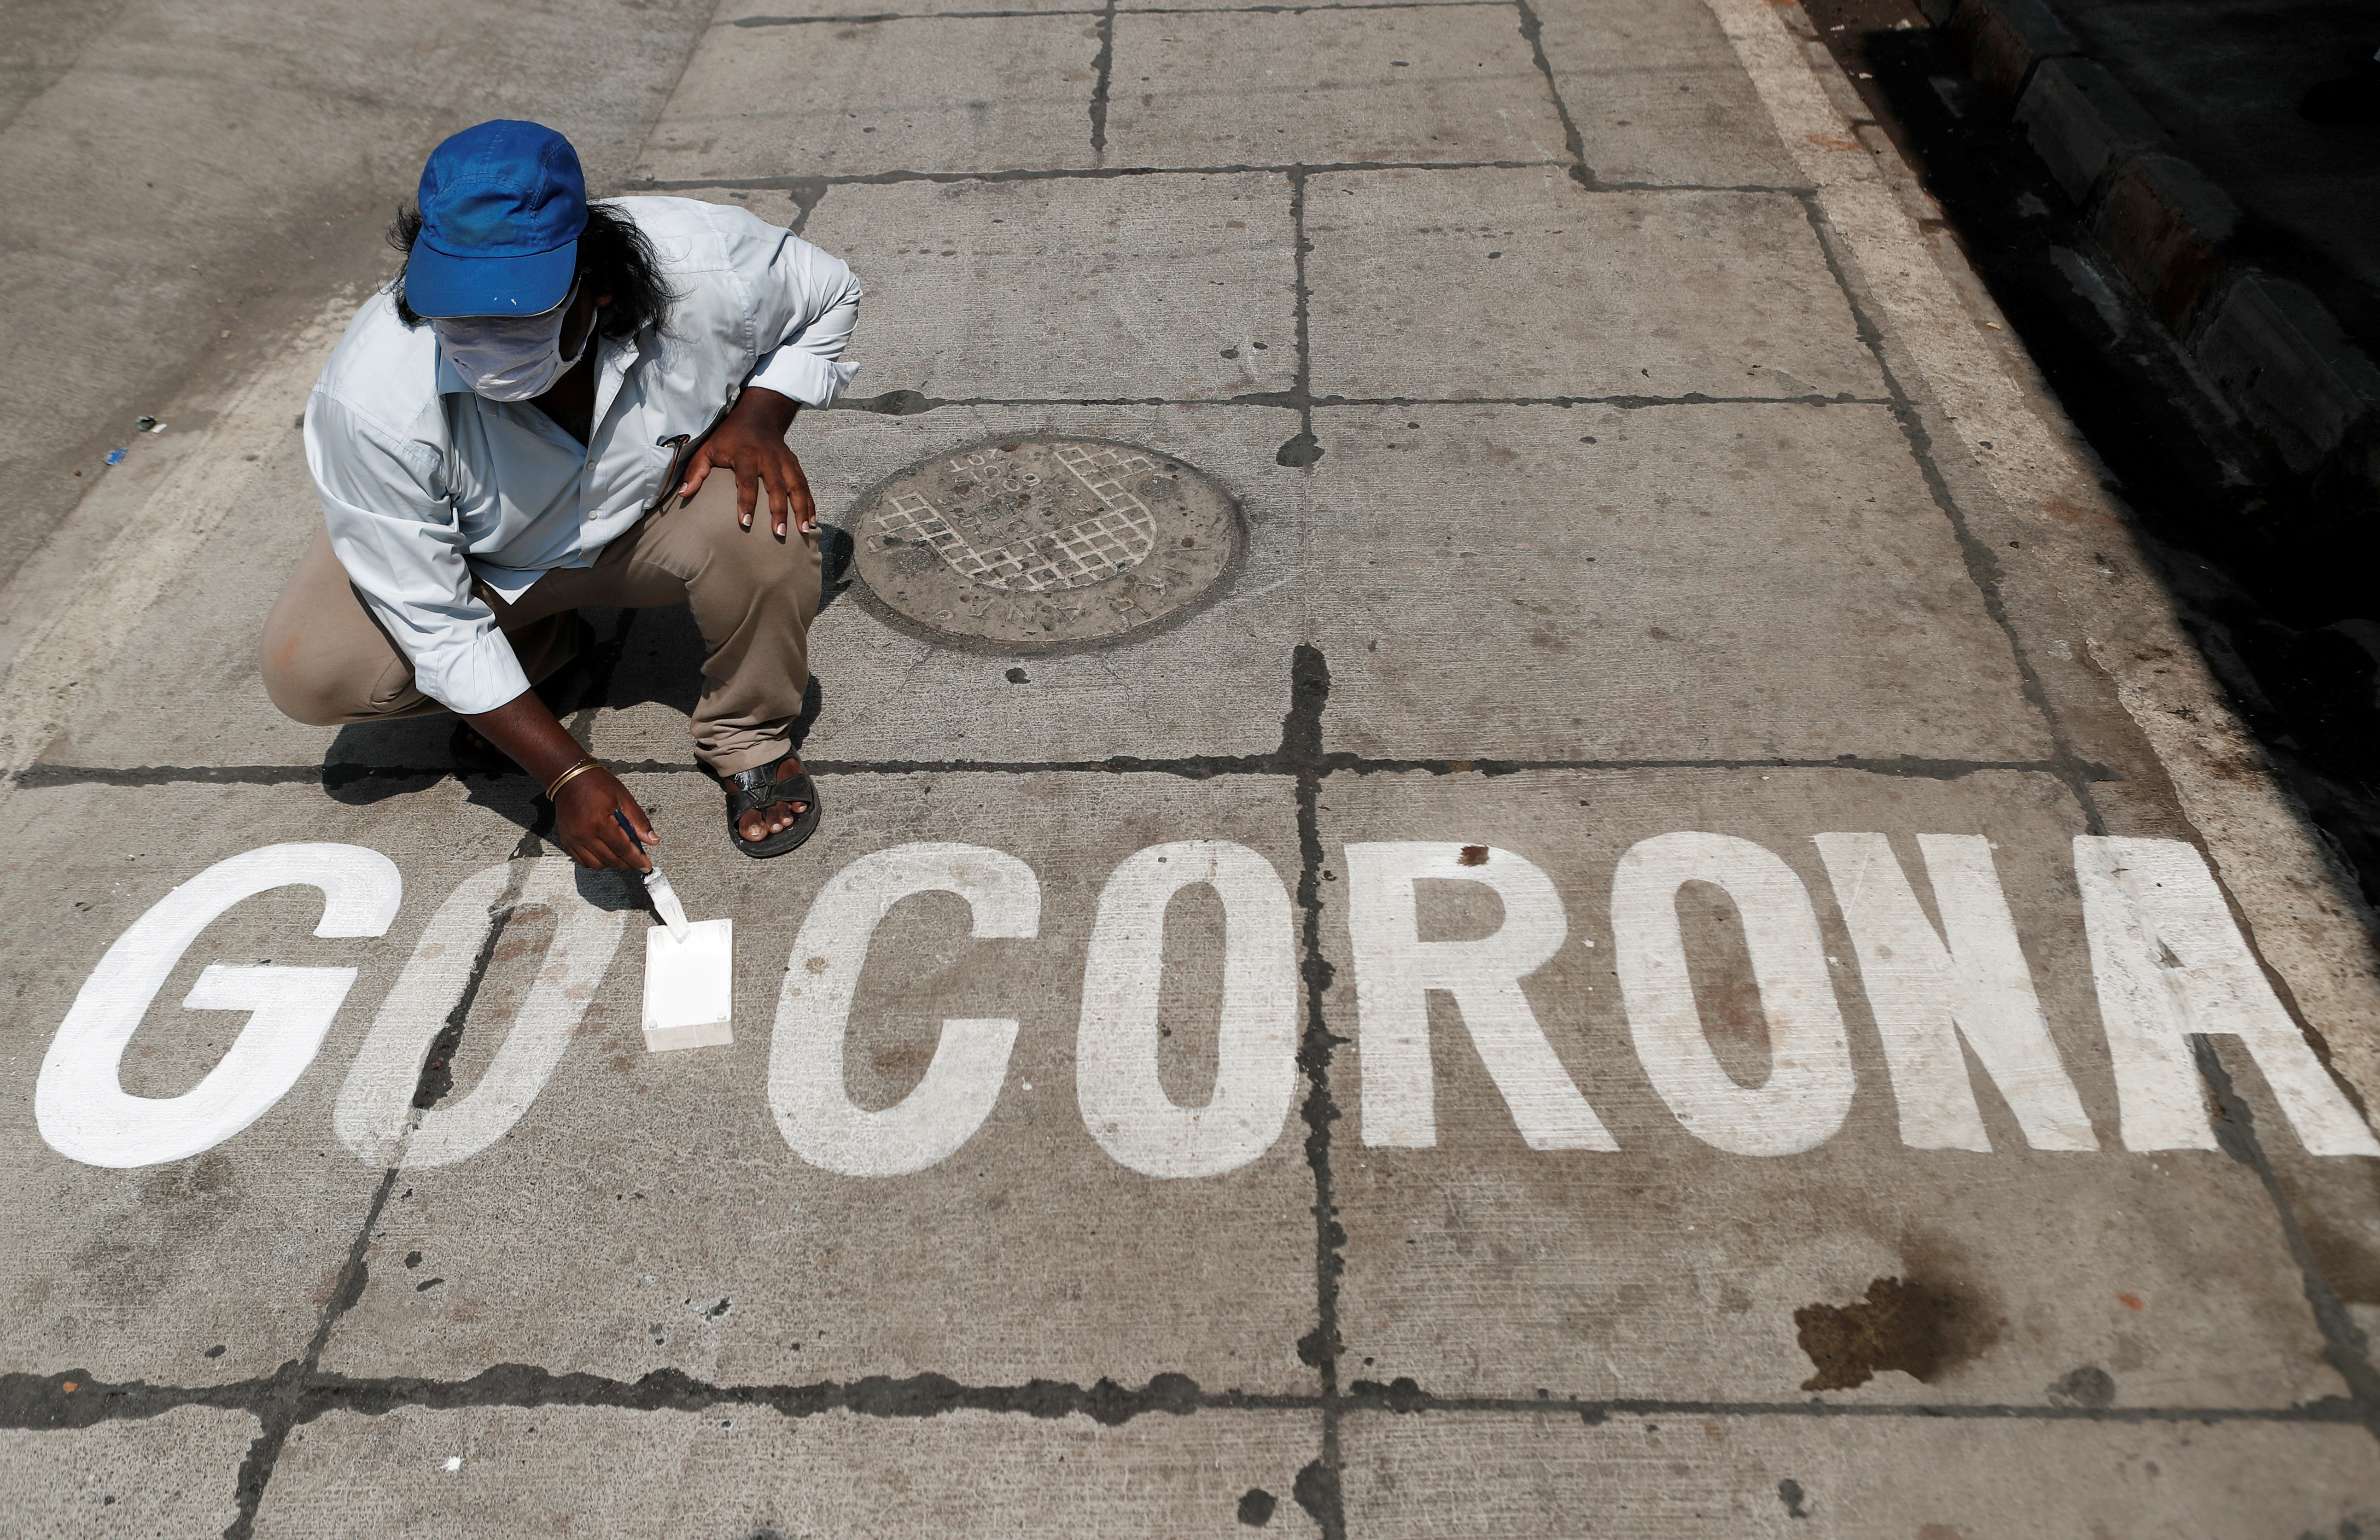 A man paints a message on a street after India ordered a 21- day nationwide lockdown to limit the spreading of coronavirus disease (COVID-19) in Mumbai, India March 28, 2020. REUTERS/Francis Mascarenhas     TPX IMAGES OF THE DAY - RC2YSF9BHTFJ